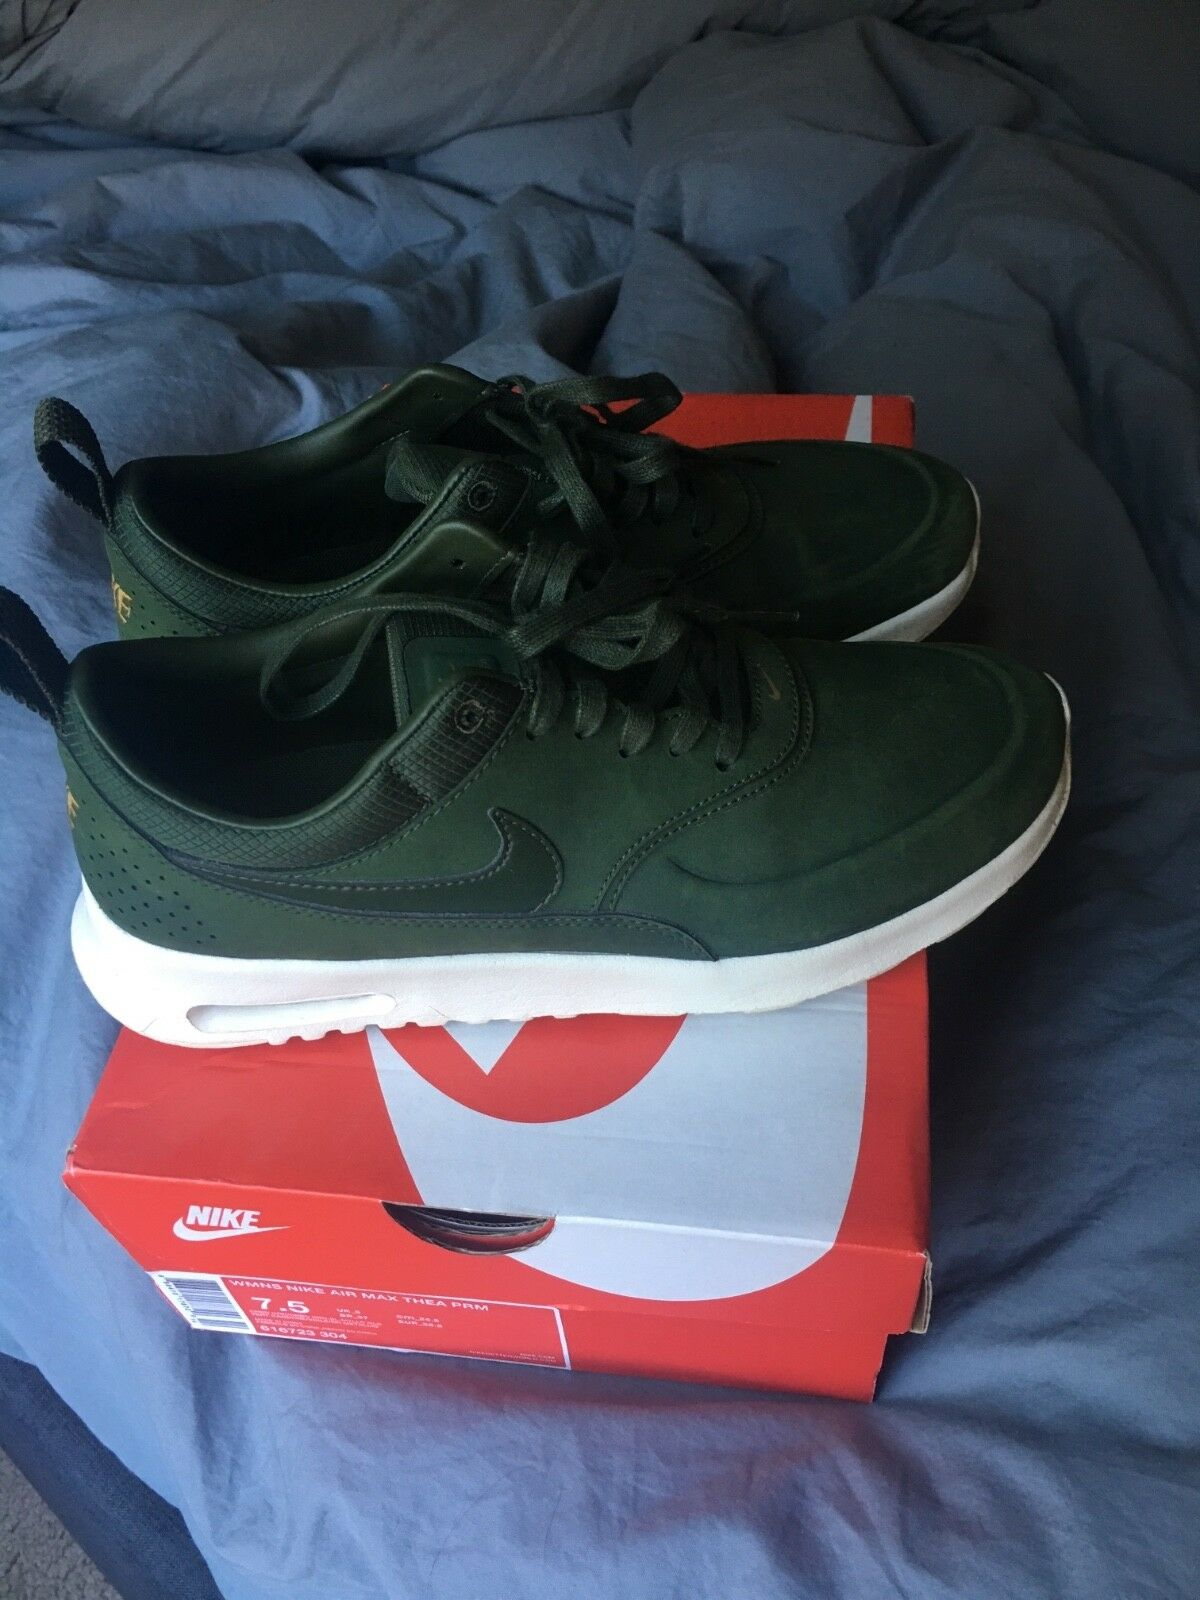 woman shoes nike/size 7.5/great condition/Wore them twice, green color. Cheap and beautiful fashion